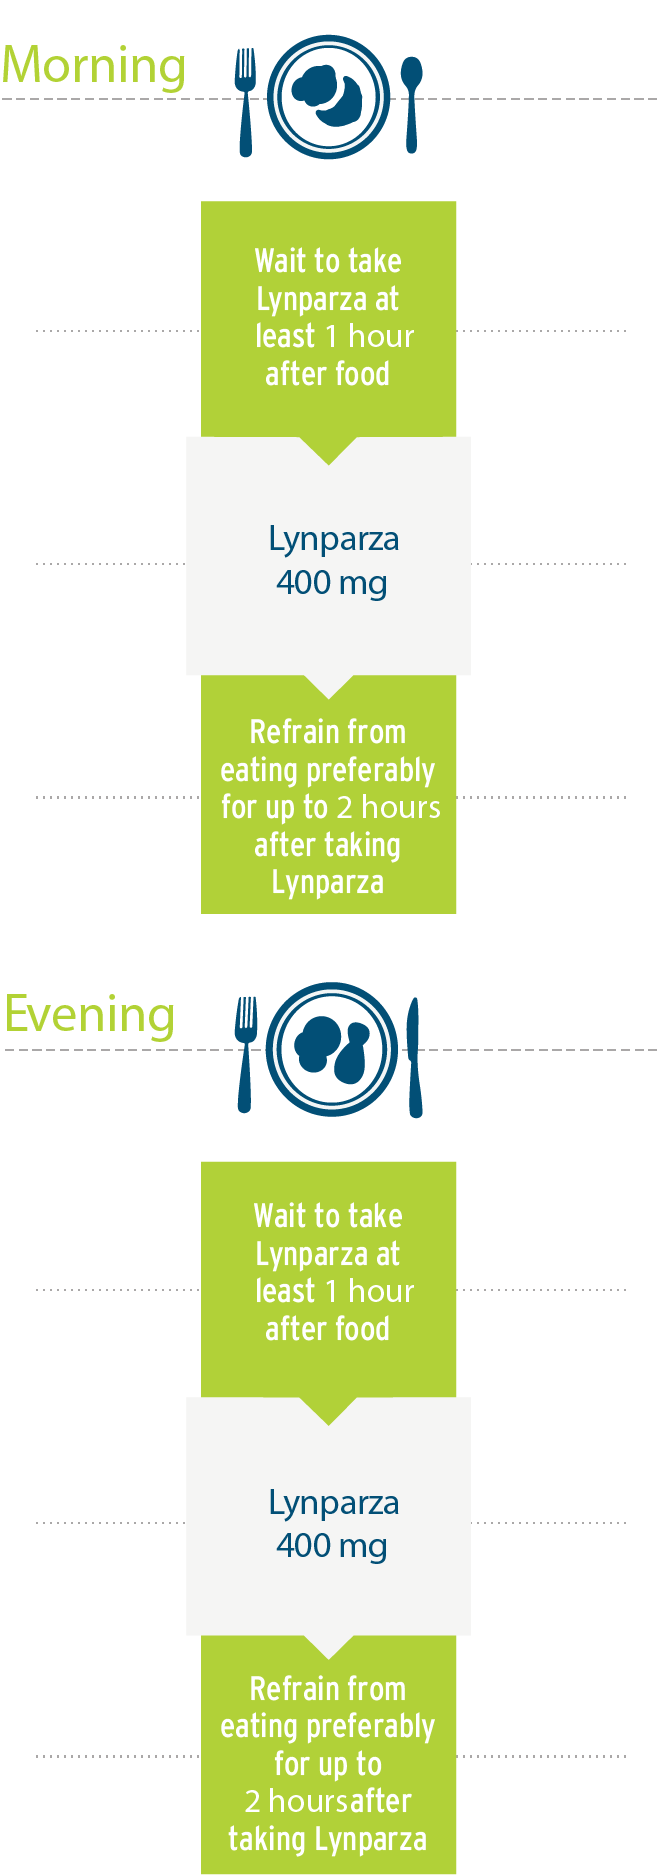 Image showing how to take Lynparza 400mg around morning and evening mealtimes